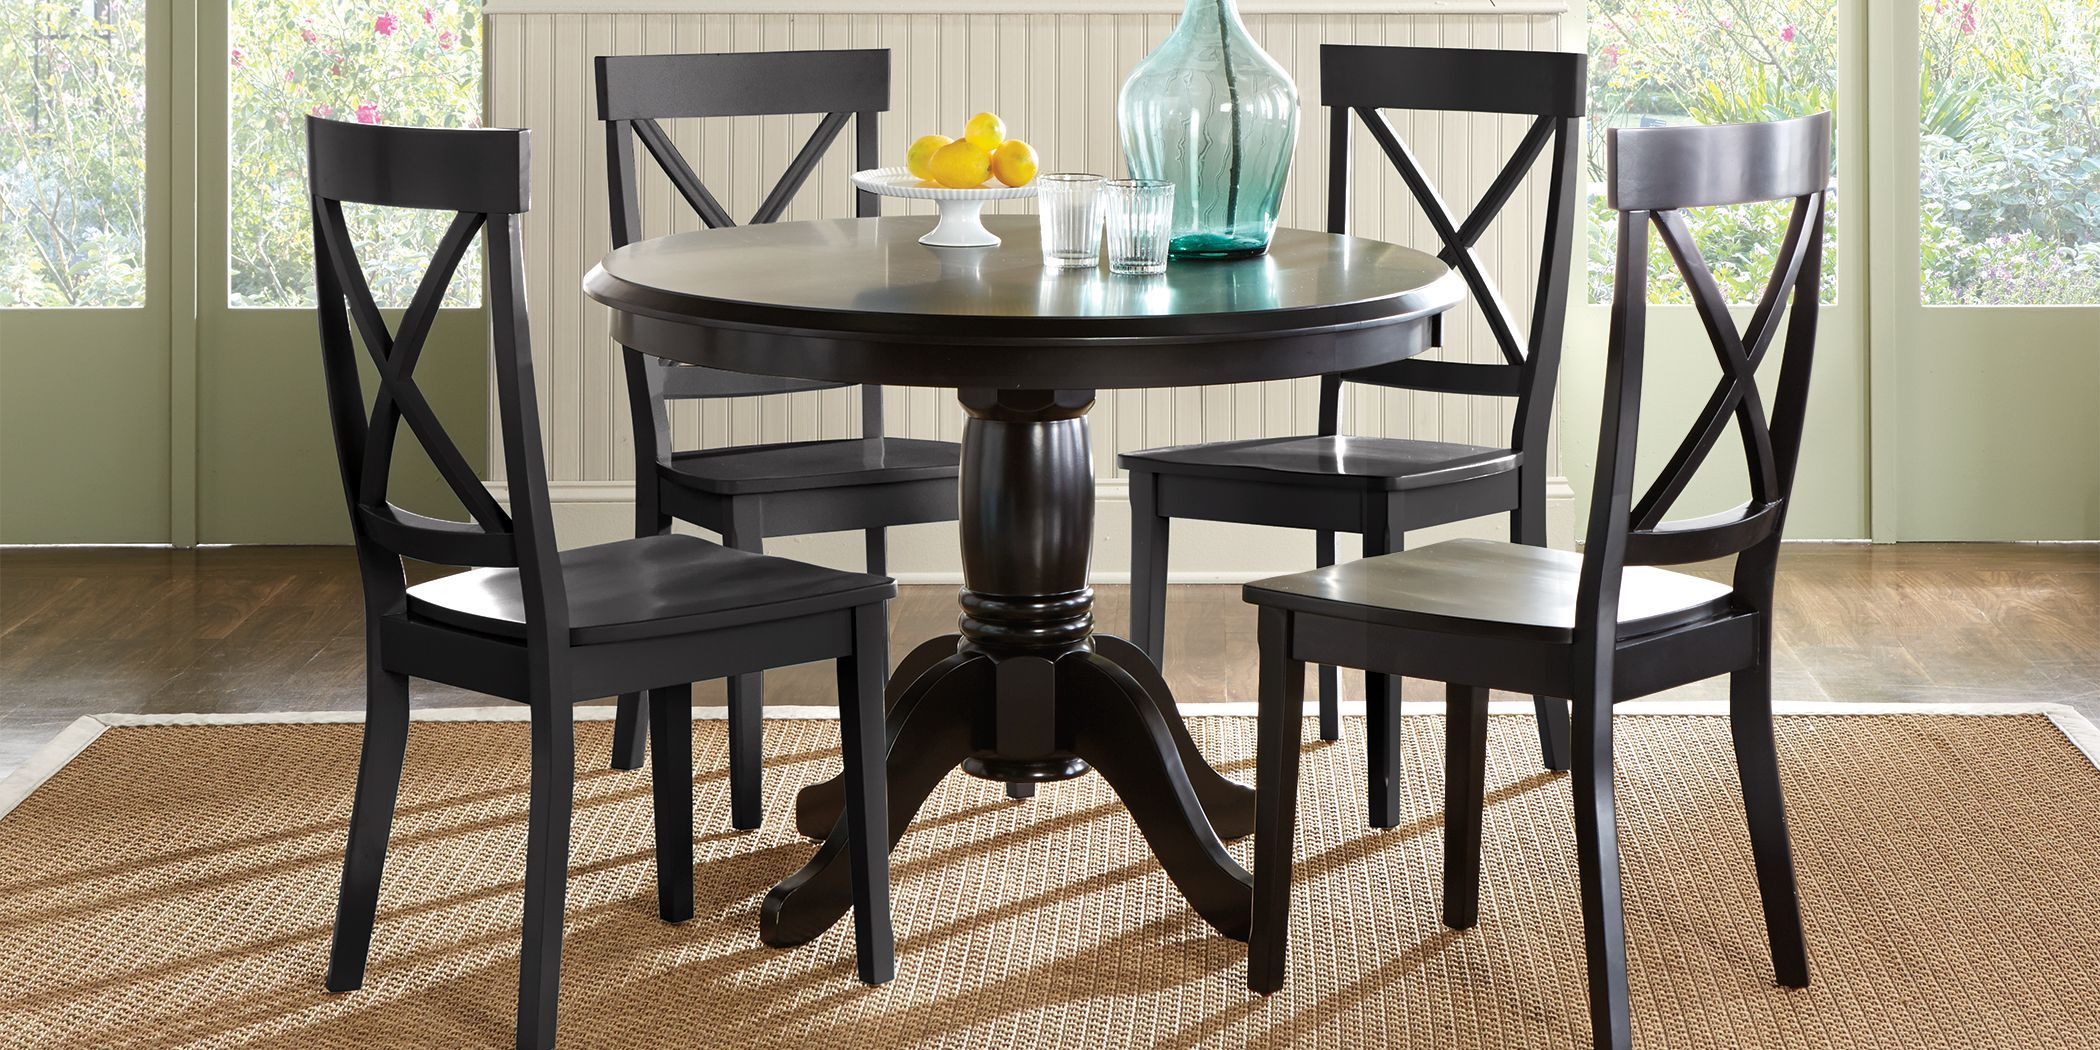 Brynwood Black 9 Pc Round Dining Set with Black Chairs   Dining ...